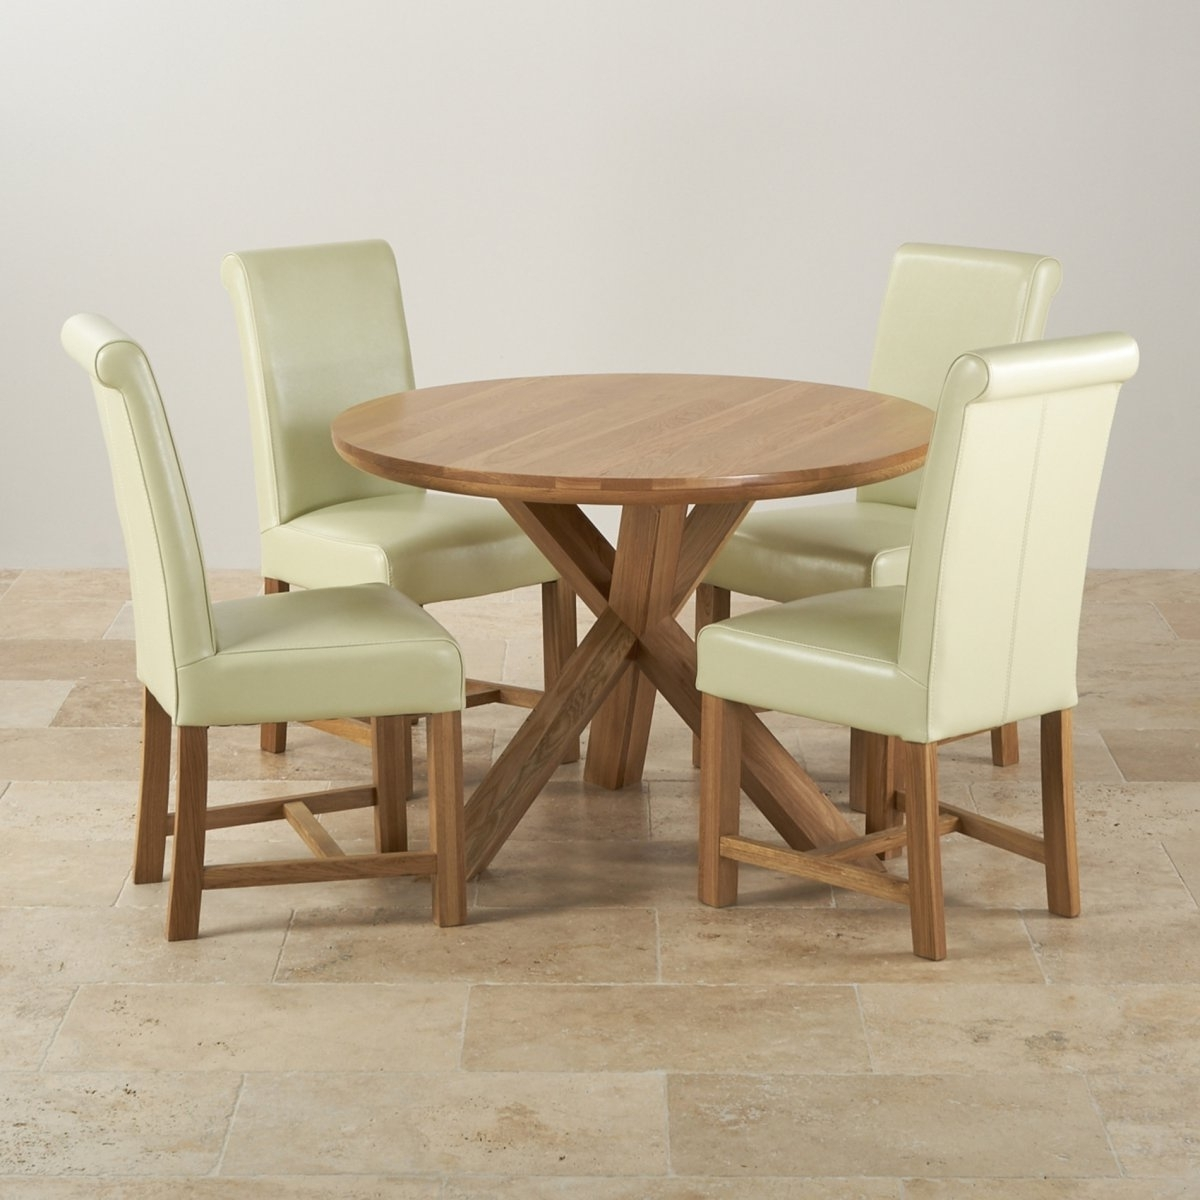 Oak Round Dining Tables And Chairs With Regard To Newest Natural Oak Round Dining Set Table 4 Cream Leather Chairs High End (View 5 of 25)